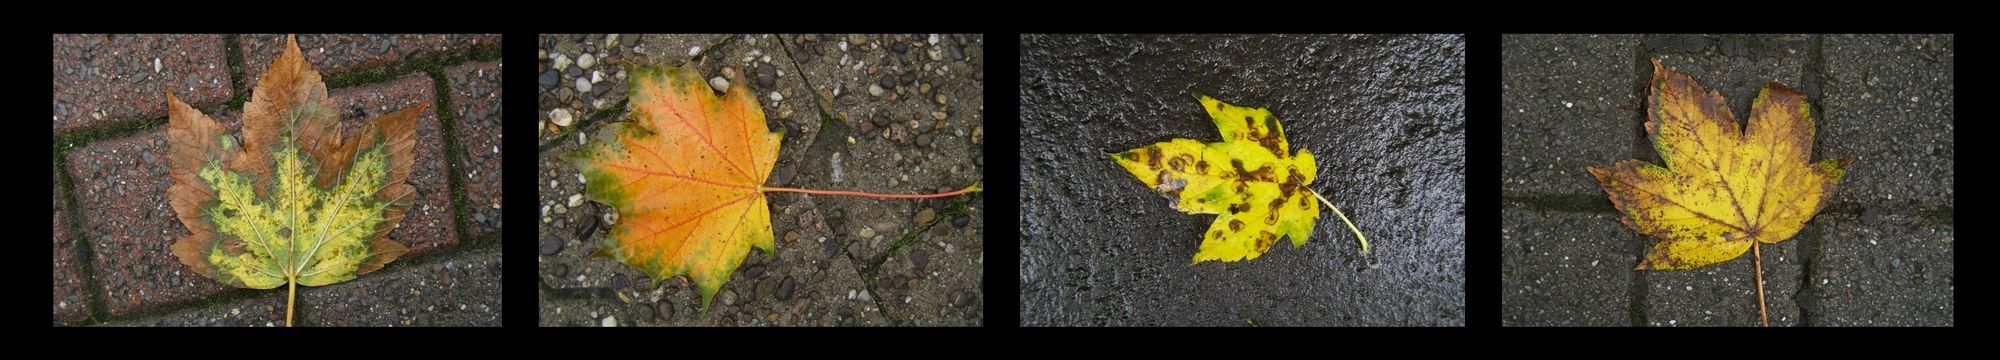 Four images, each of a single autumnal leaf lying on wet brick or concrete